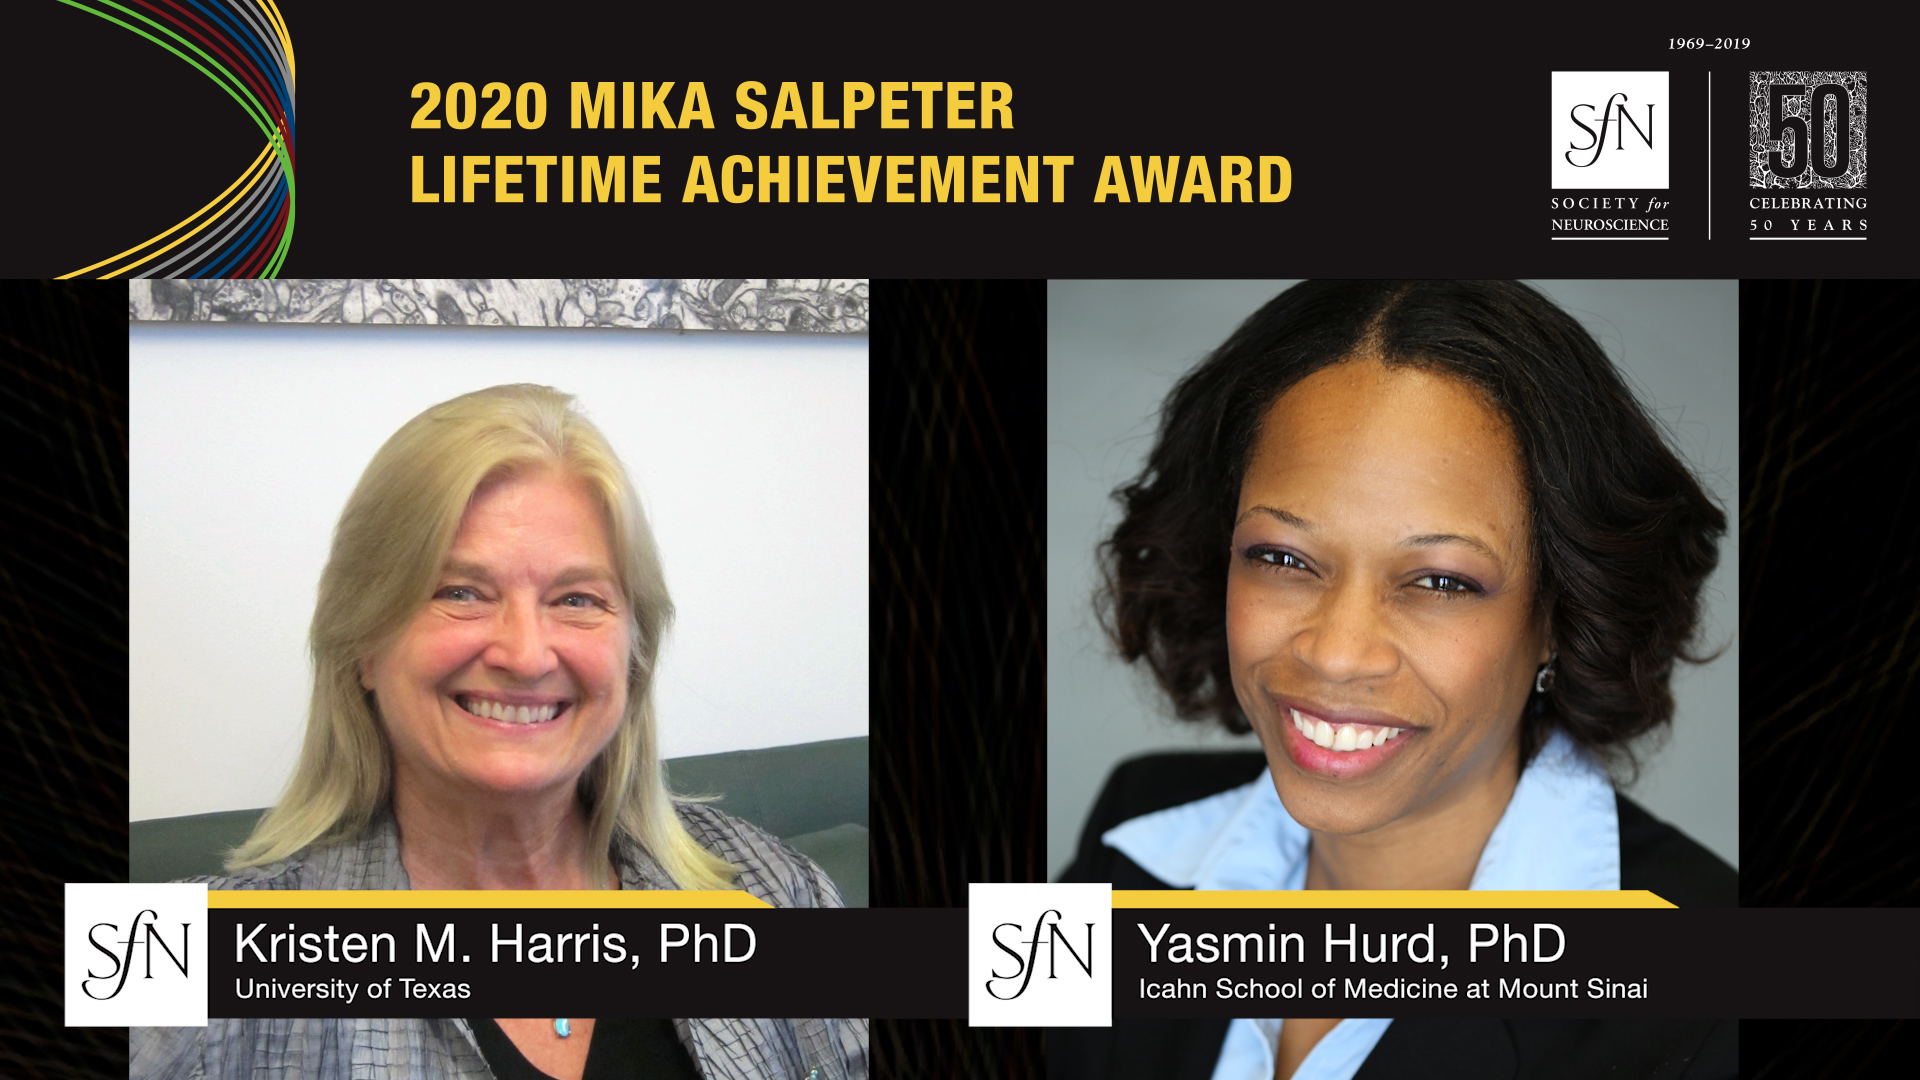 2020 Mika Salpeter Lifetime Achievement Award winners graphic, images of Kristen M. Harris, PhD University of Texas and Yasmin Hurd, PhD Icahn School of Medicine at Mount Sinai